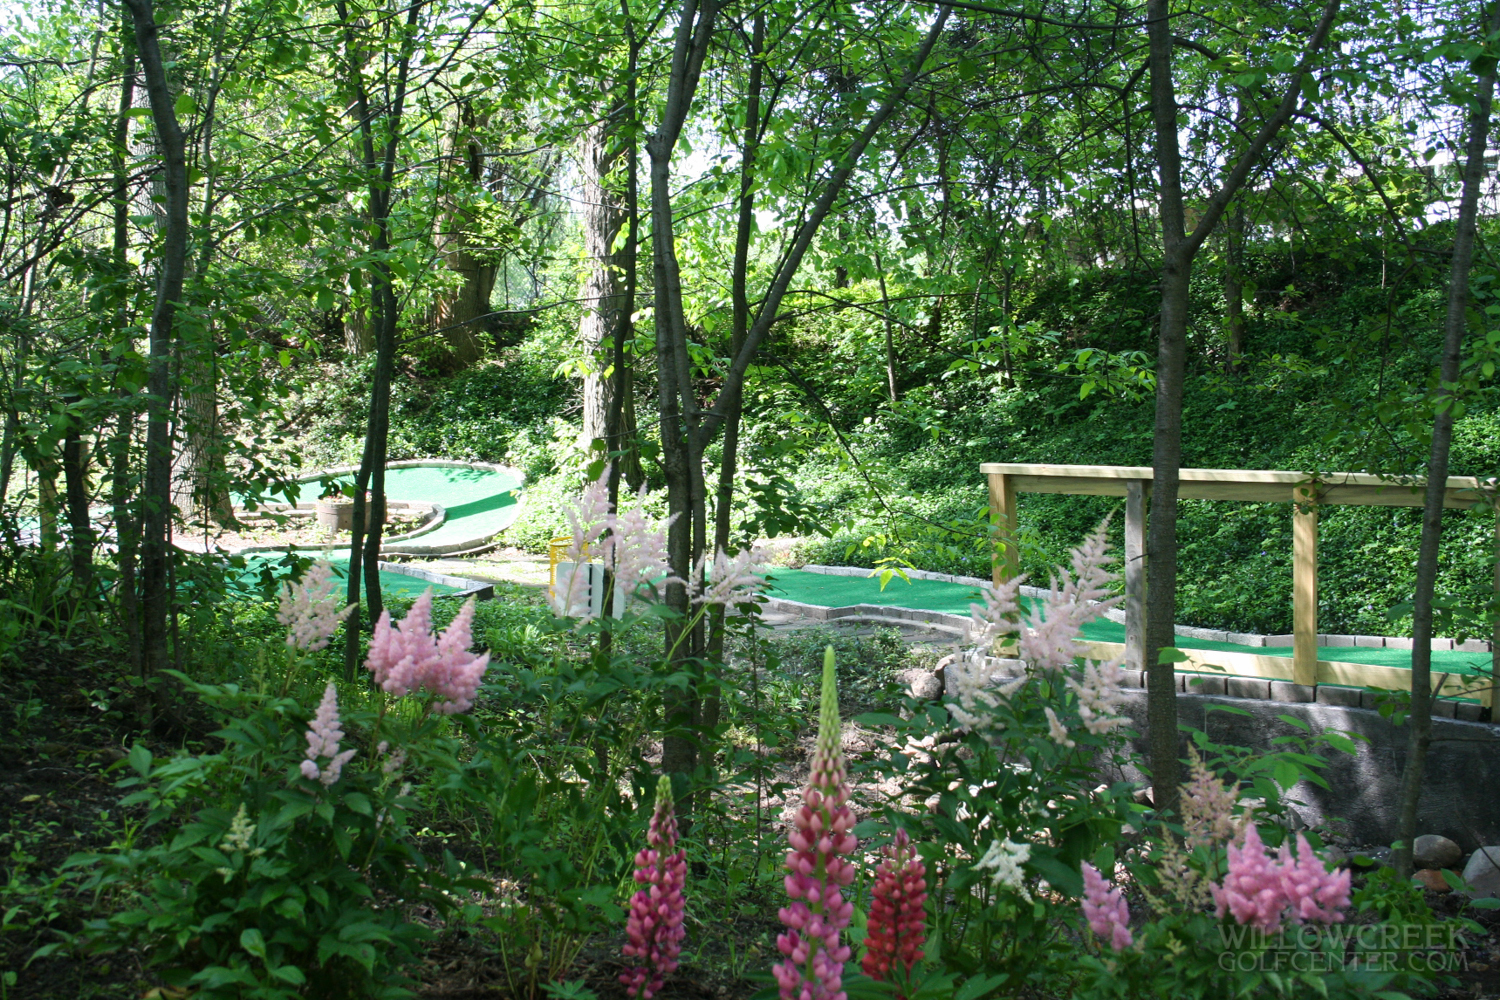 Willow Creek Golf & Sports Center | Miniature Golf | Mini Golf | Putt Putt Golf | Lake Orion, MI